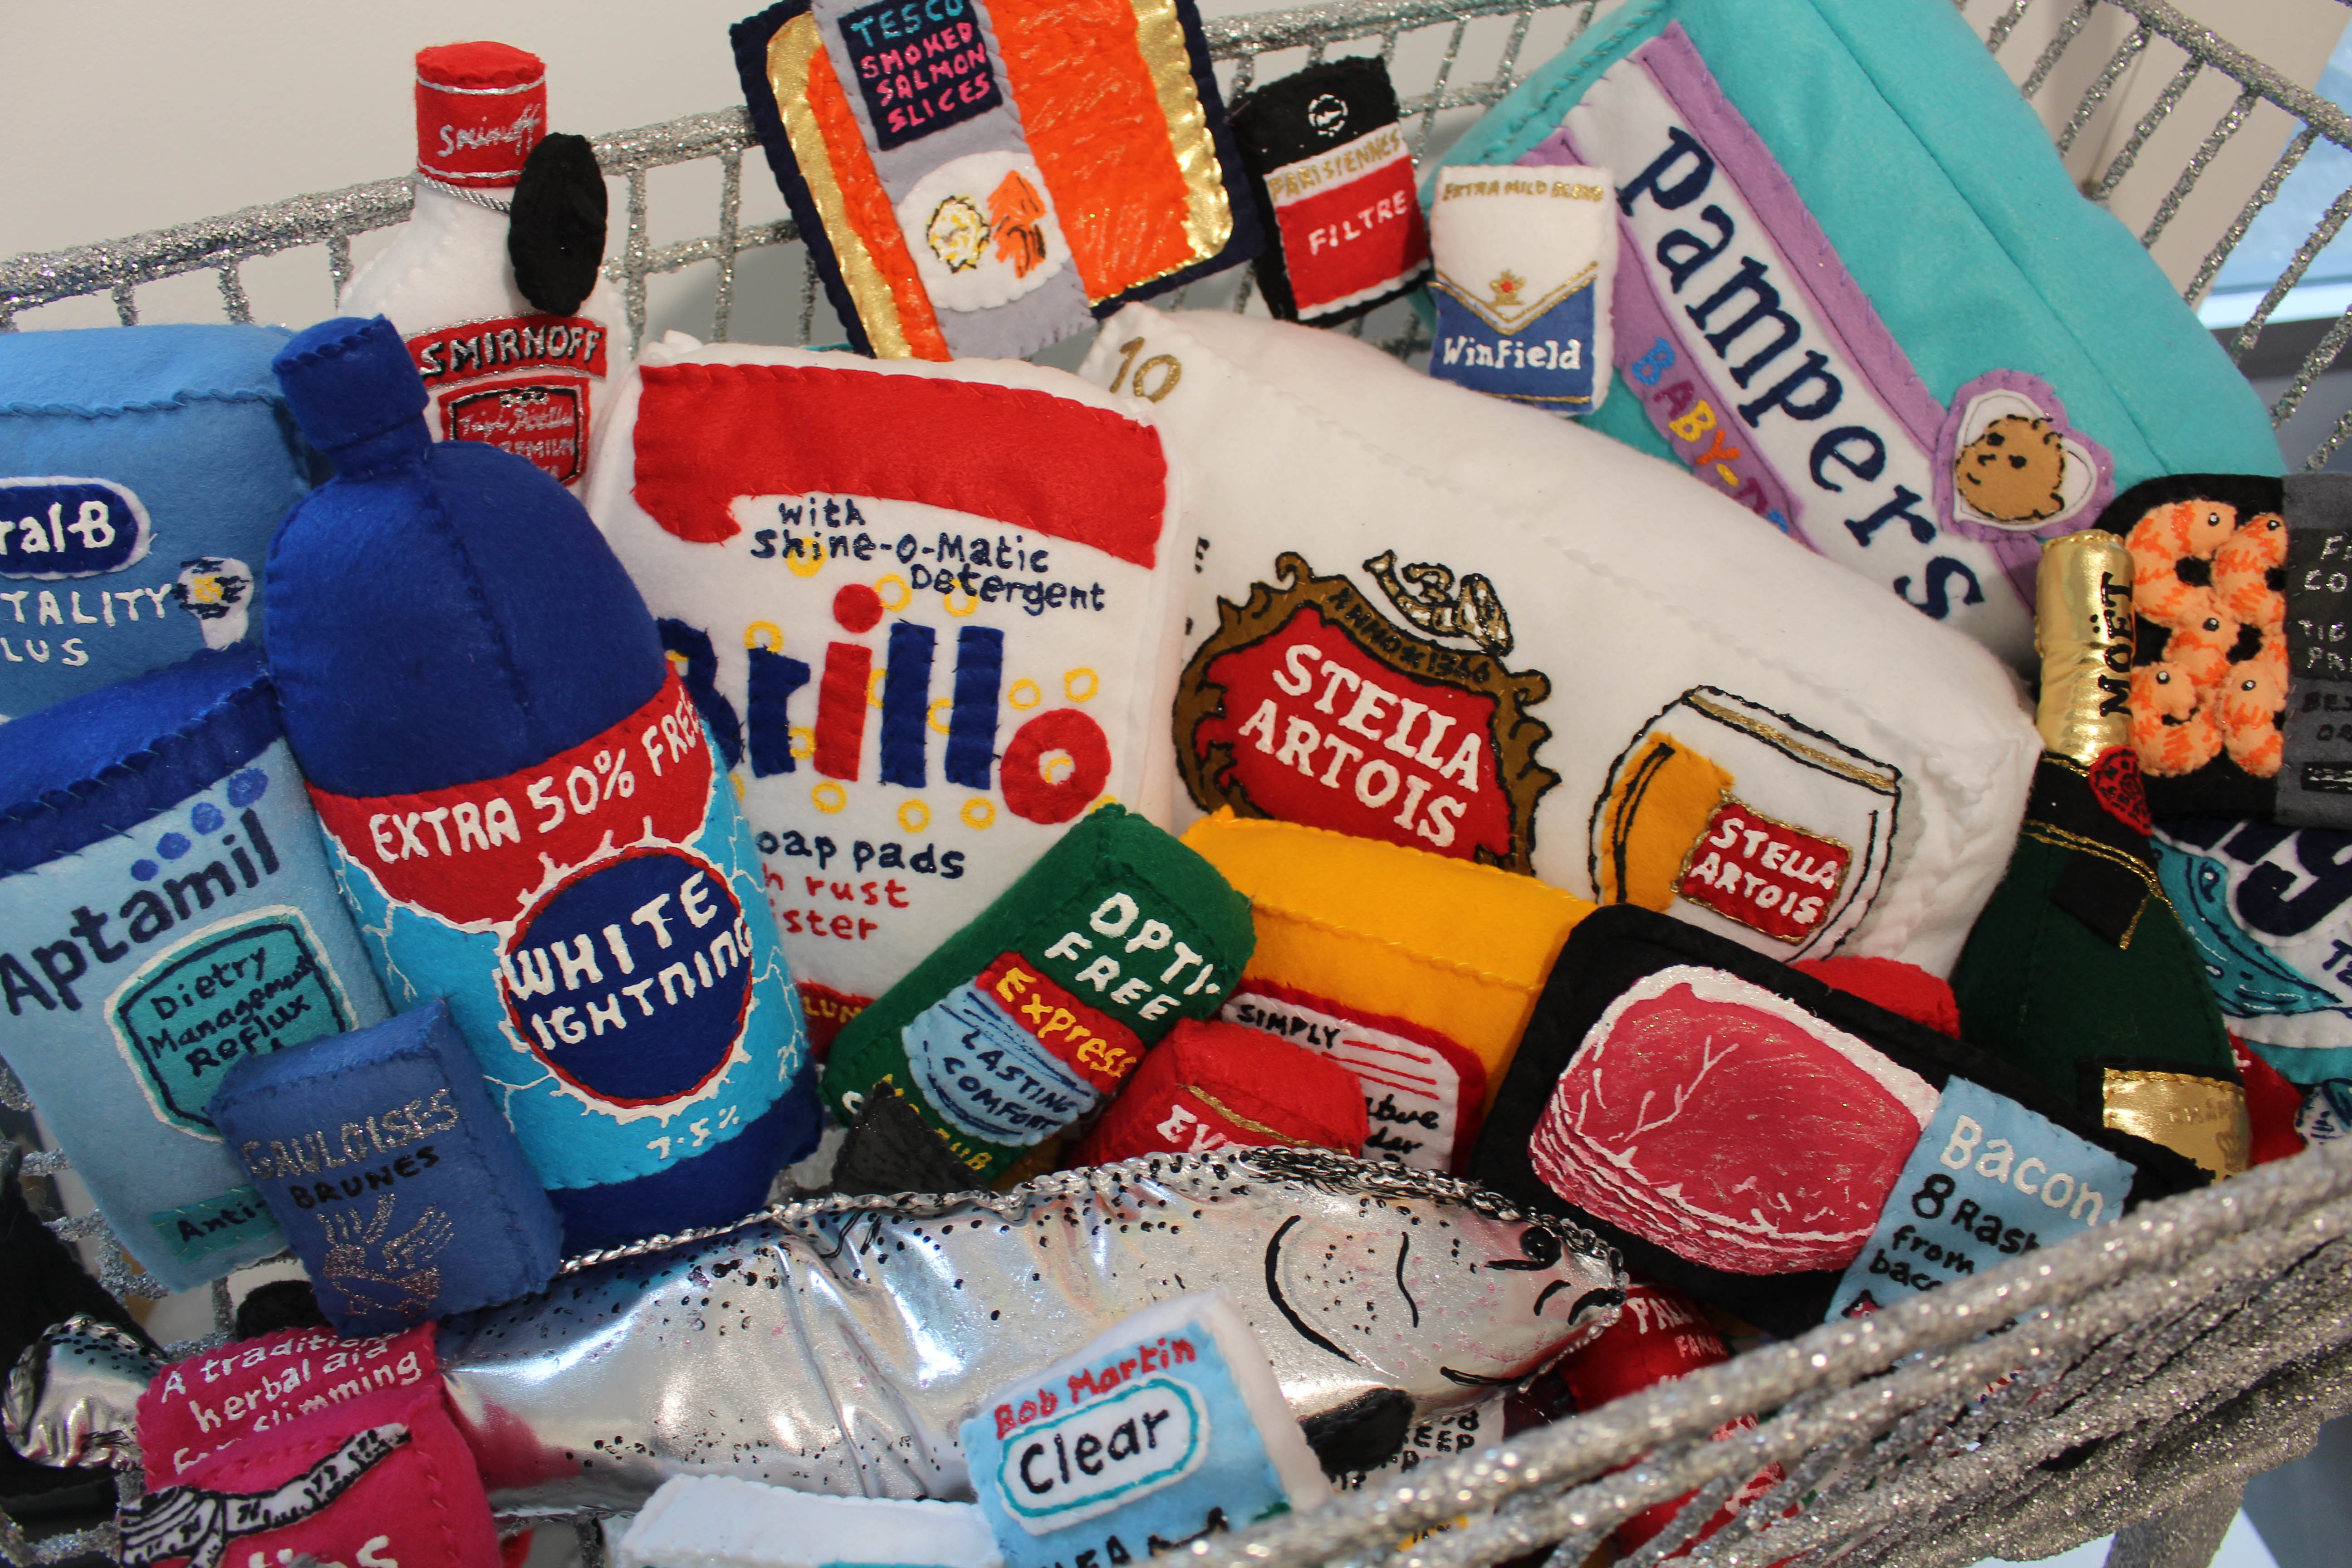 An image from Lucy Sparrow's shoplifting exhibition in at the Lawrence Atkin Gallery including felt made bacon and beer